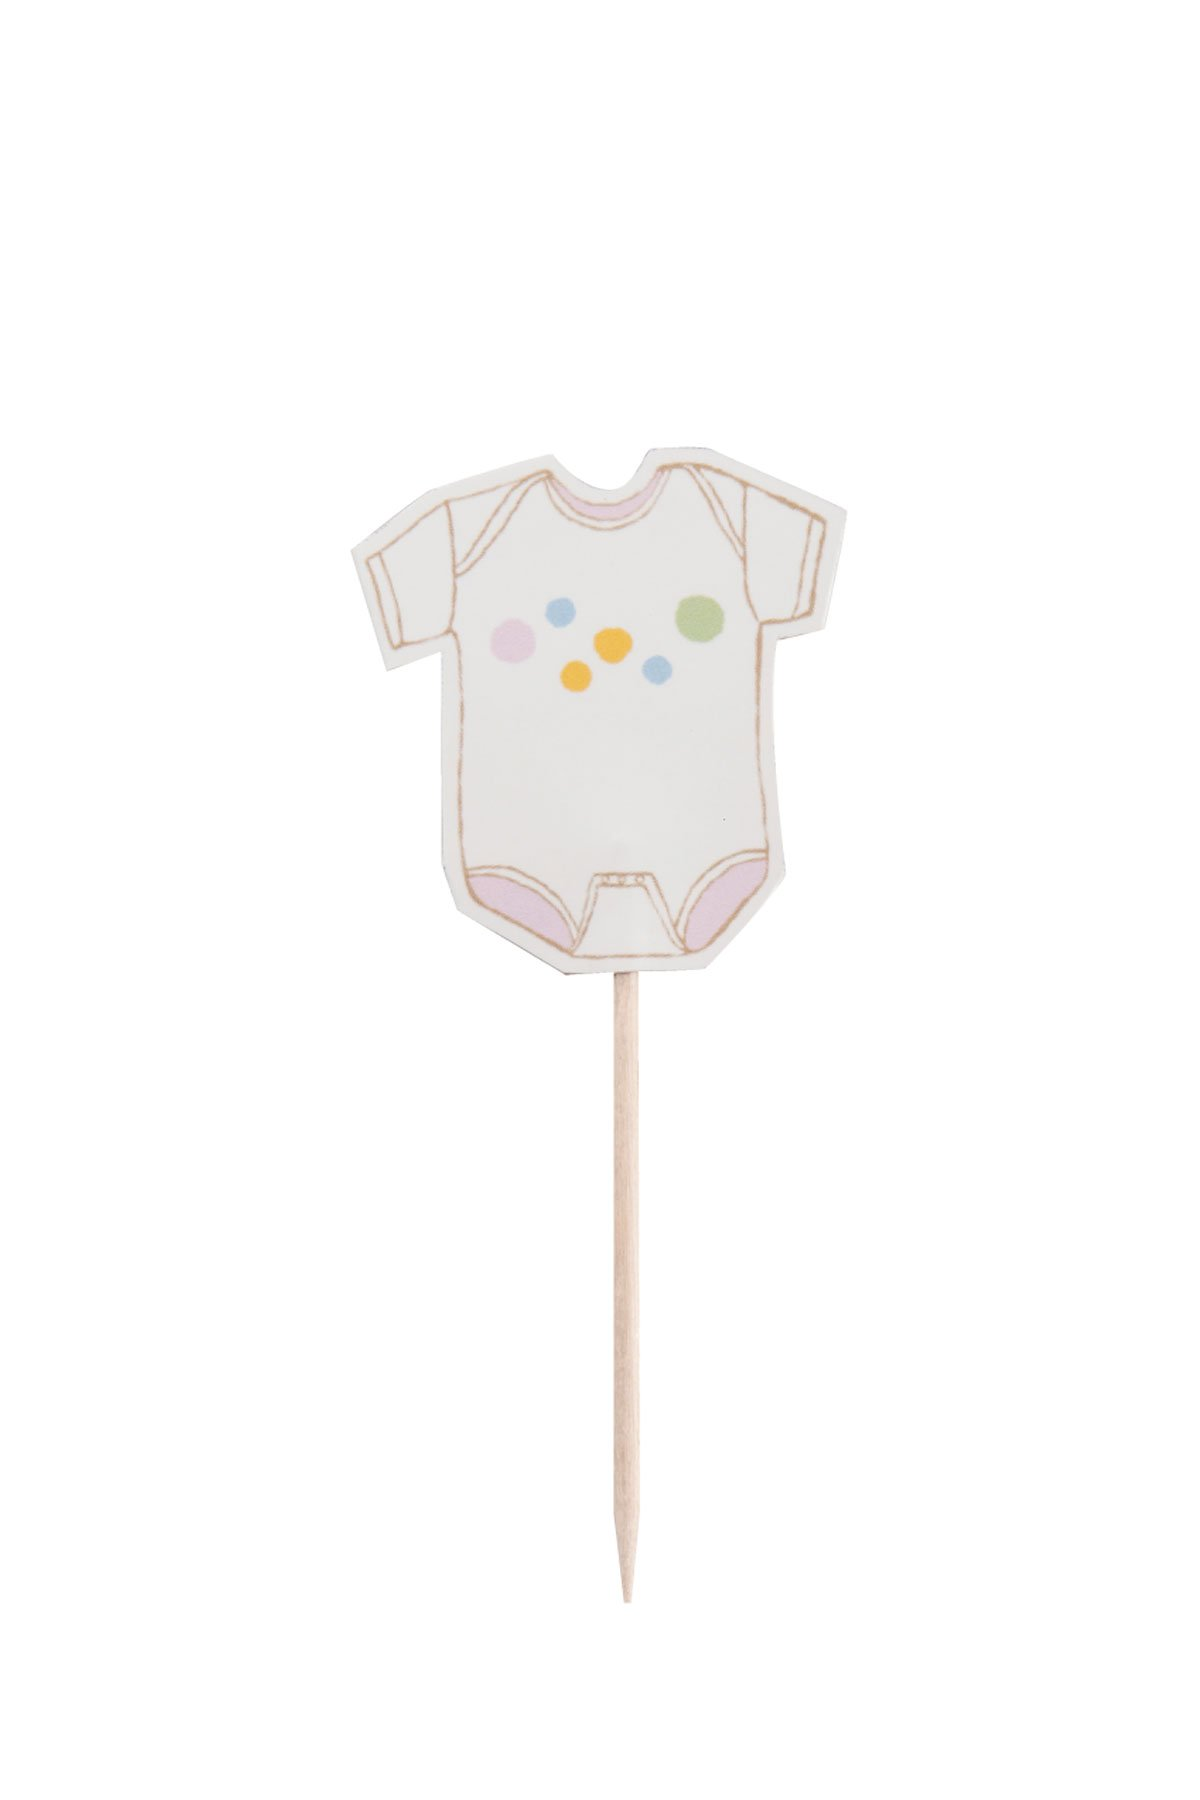 Penelope's Parties Baby Shower Cupcake Toppers, Oh Baby, 12-Count